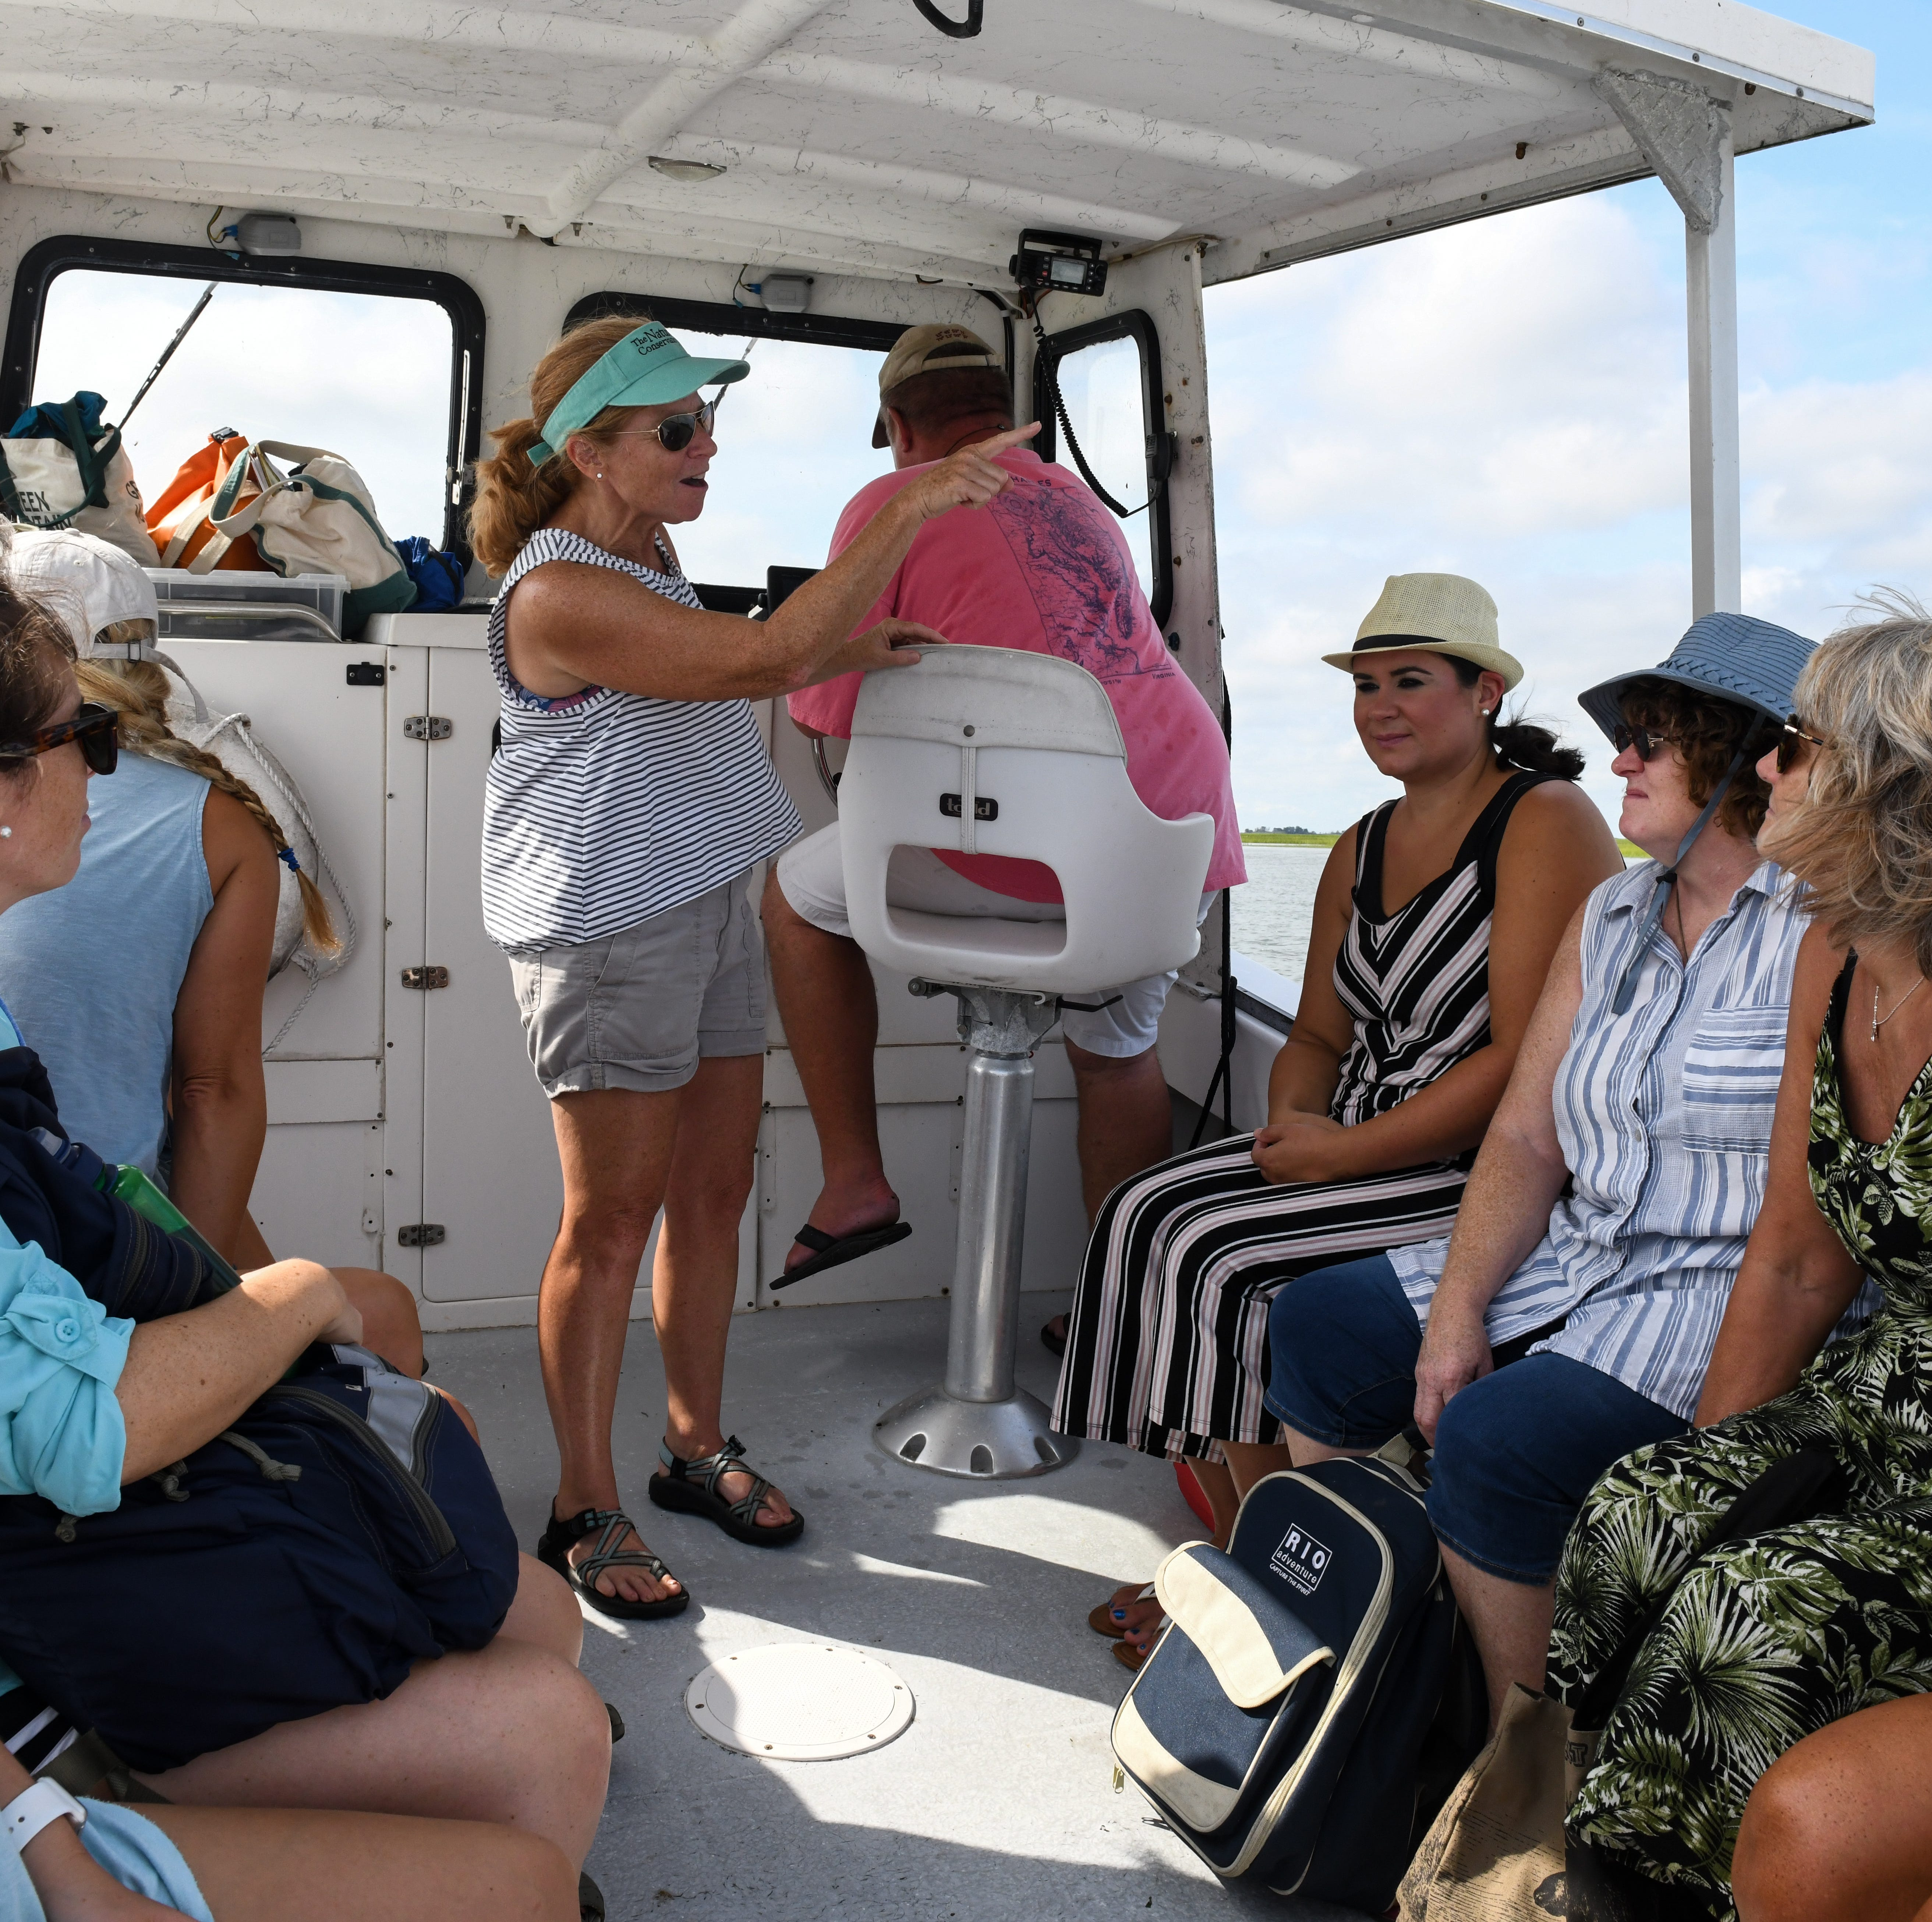 PHOTOS: New teachers learn to bring unique Virginia nature into the classroom